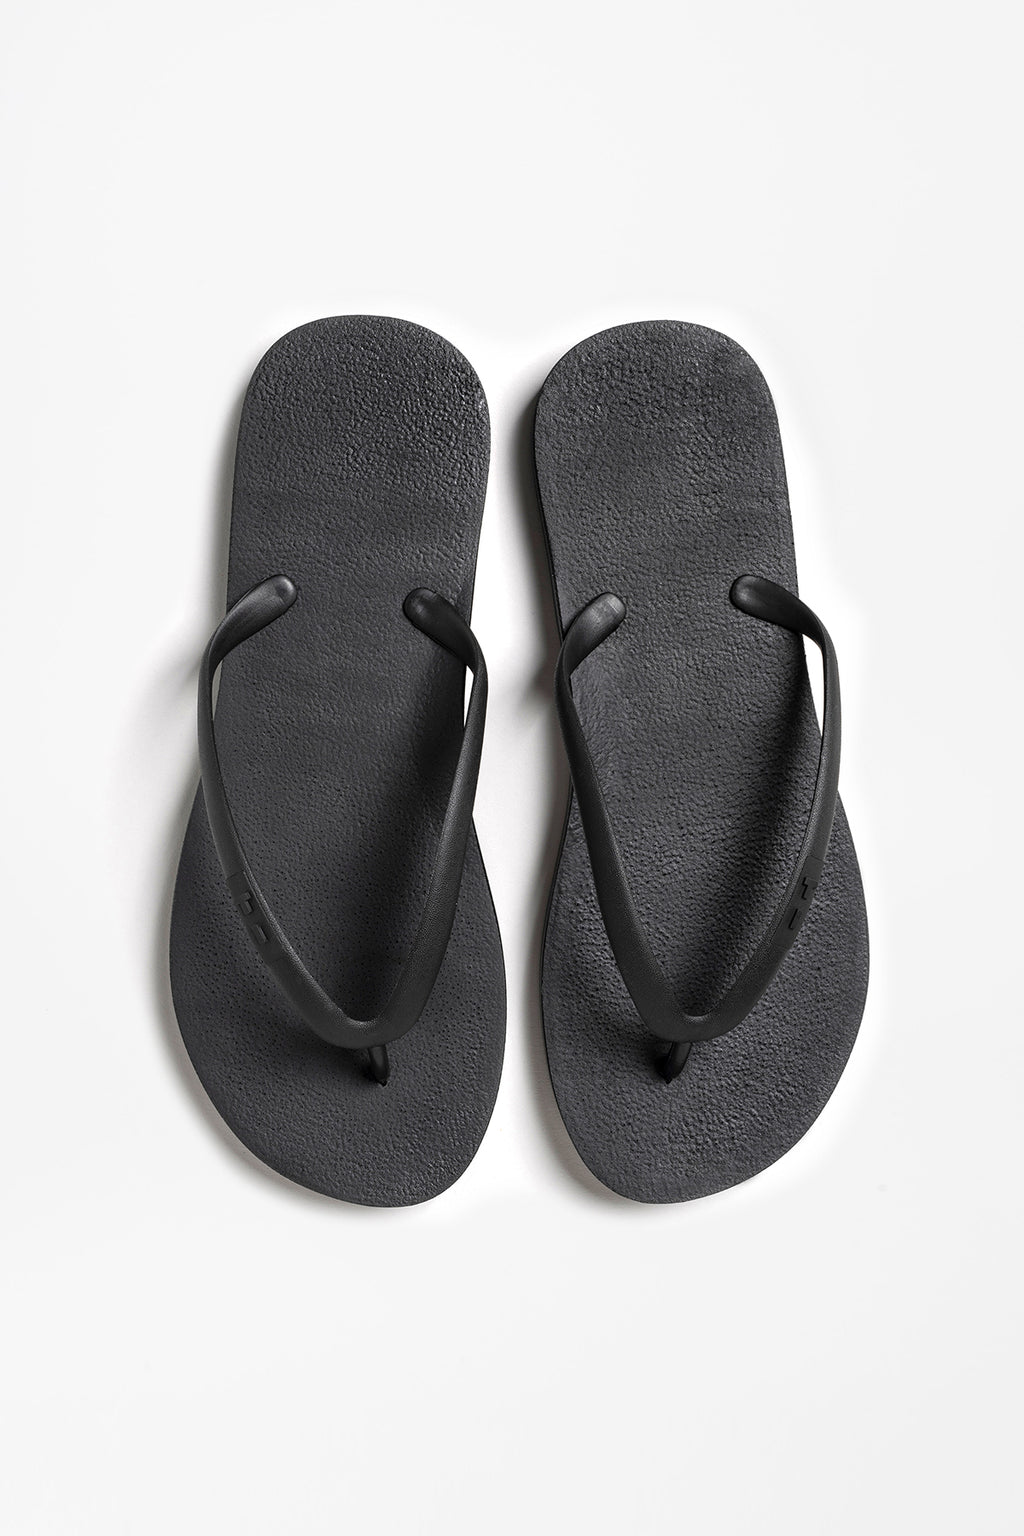 Long lasting black flip flops made with sustainable materials